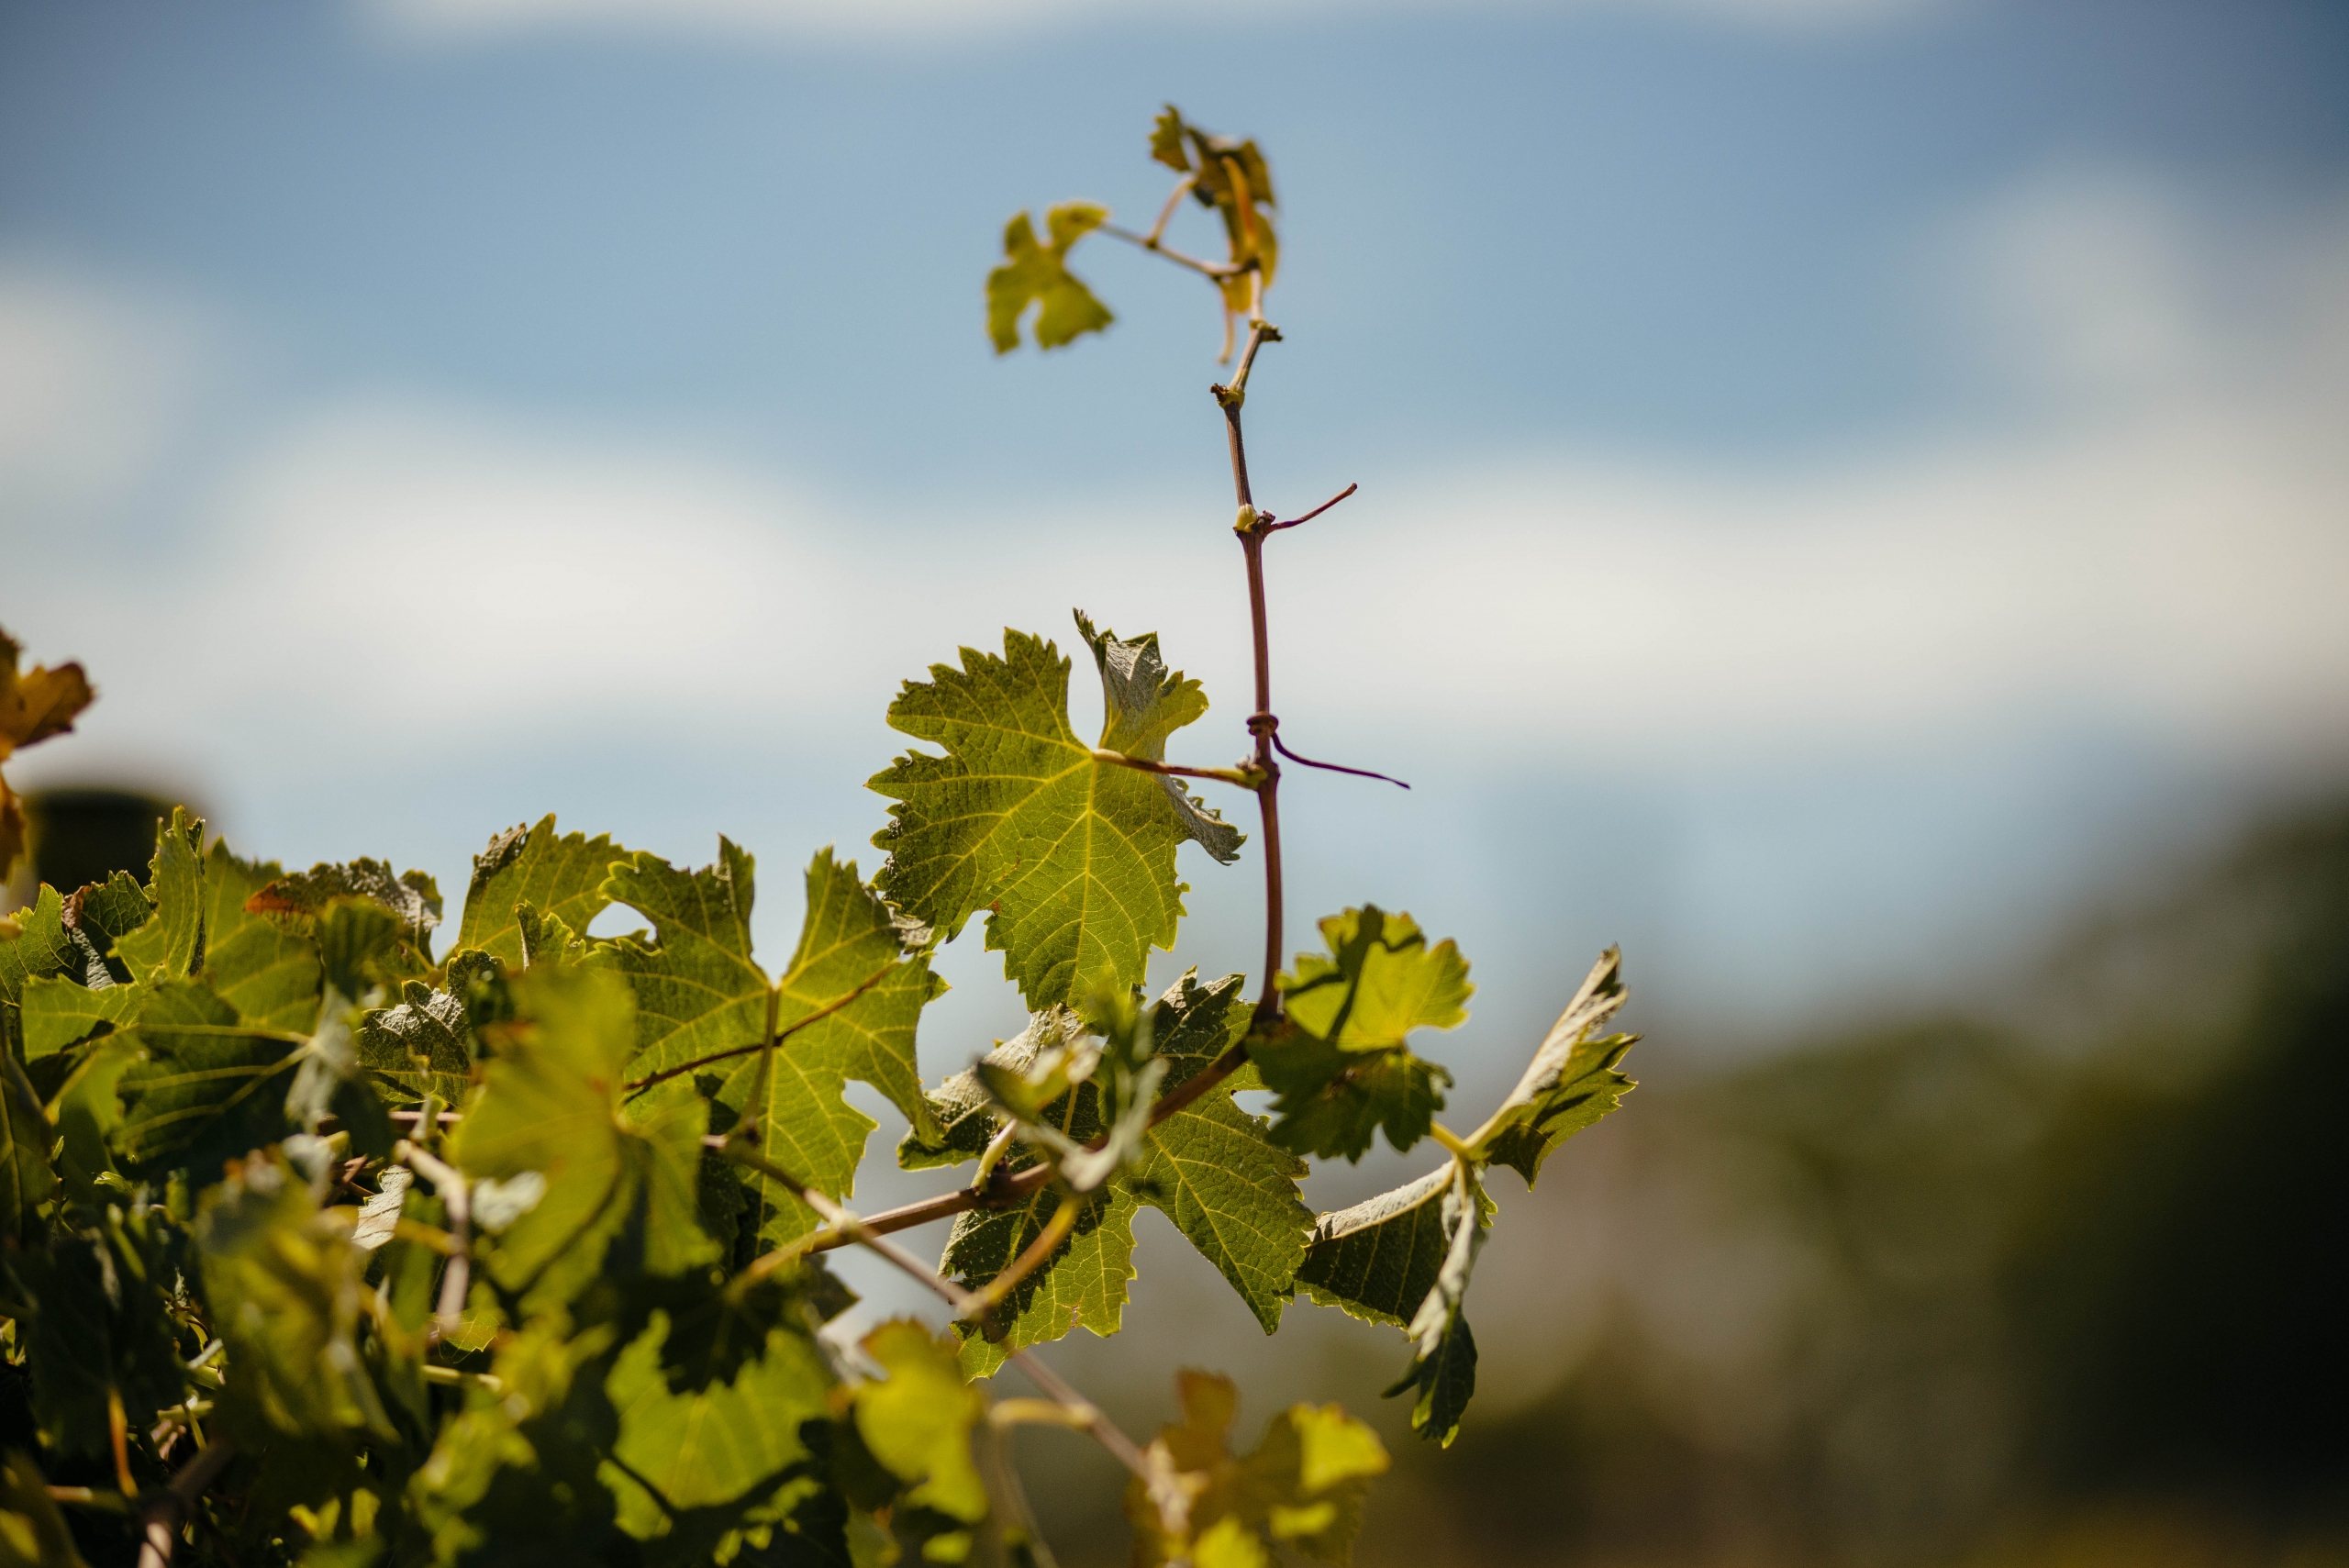 an image of grape vines and blue sky